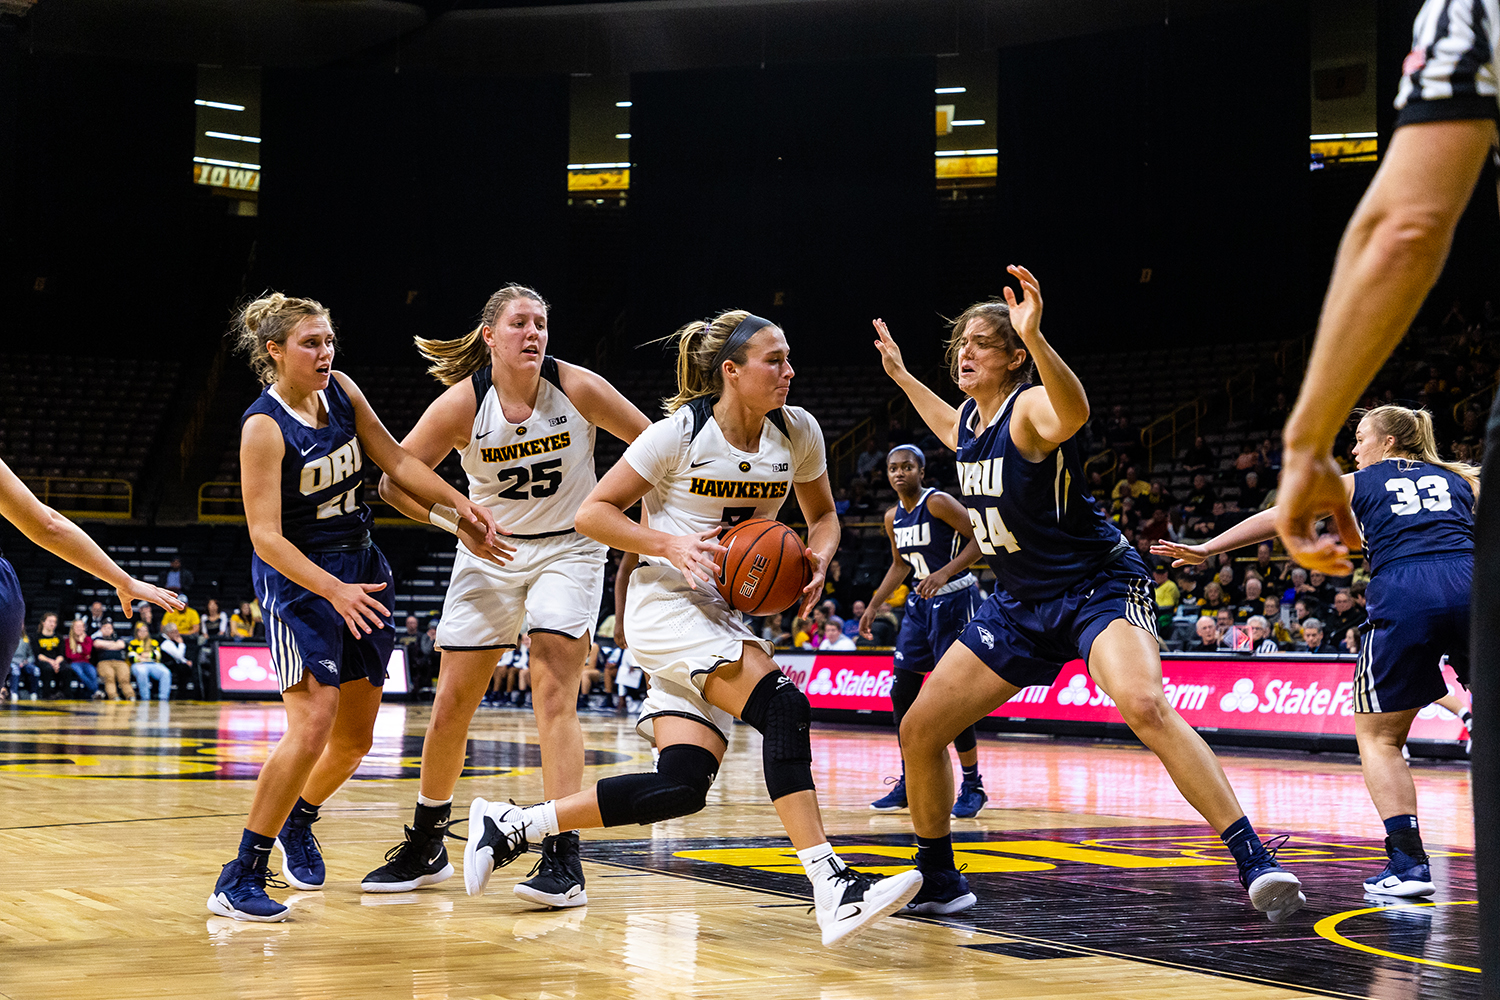 Iowa+guard+Makenzie+Meyer+No.+3+drives+into+the+lane+during+a+women%27s+basketball+game+against+Oral+Roberts+University+on+Friday%2C+Nov.+9%2C+2018.+The+Hawkeyes+defeated+the+Golden+Eagles+90-77.